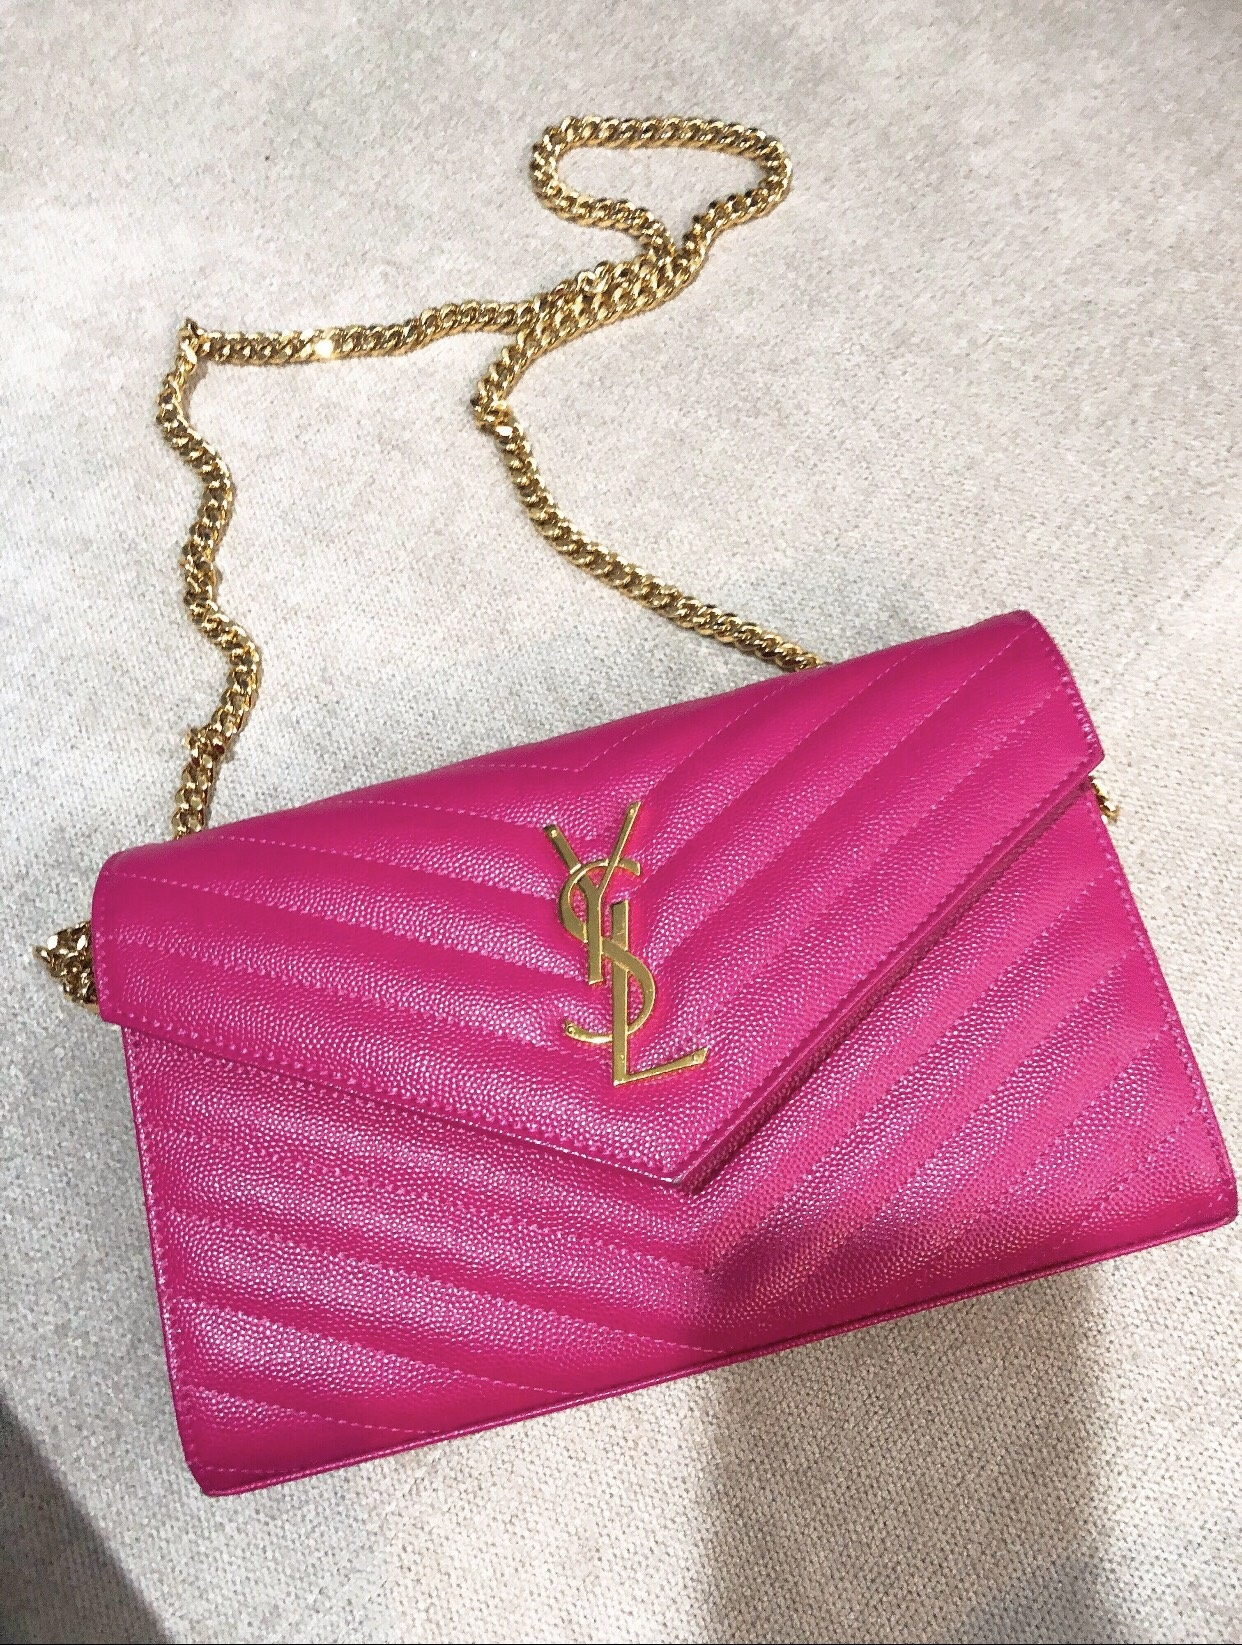 Yves Saint Laurent Www Shopmyluxurybag Com